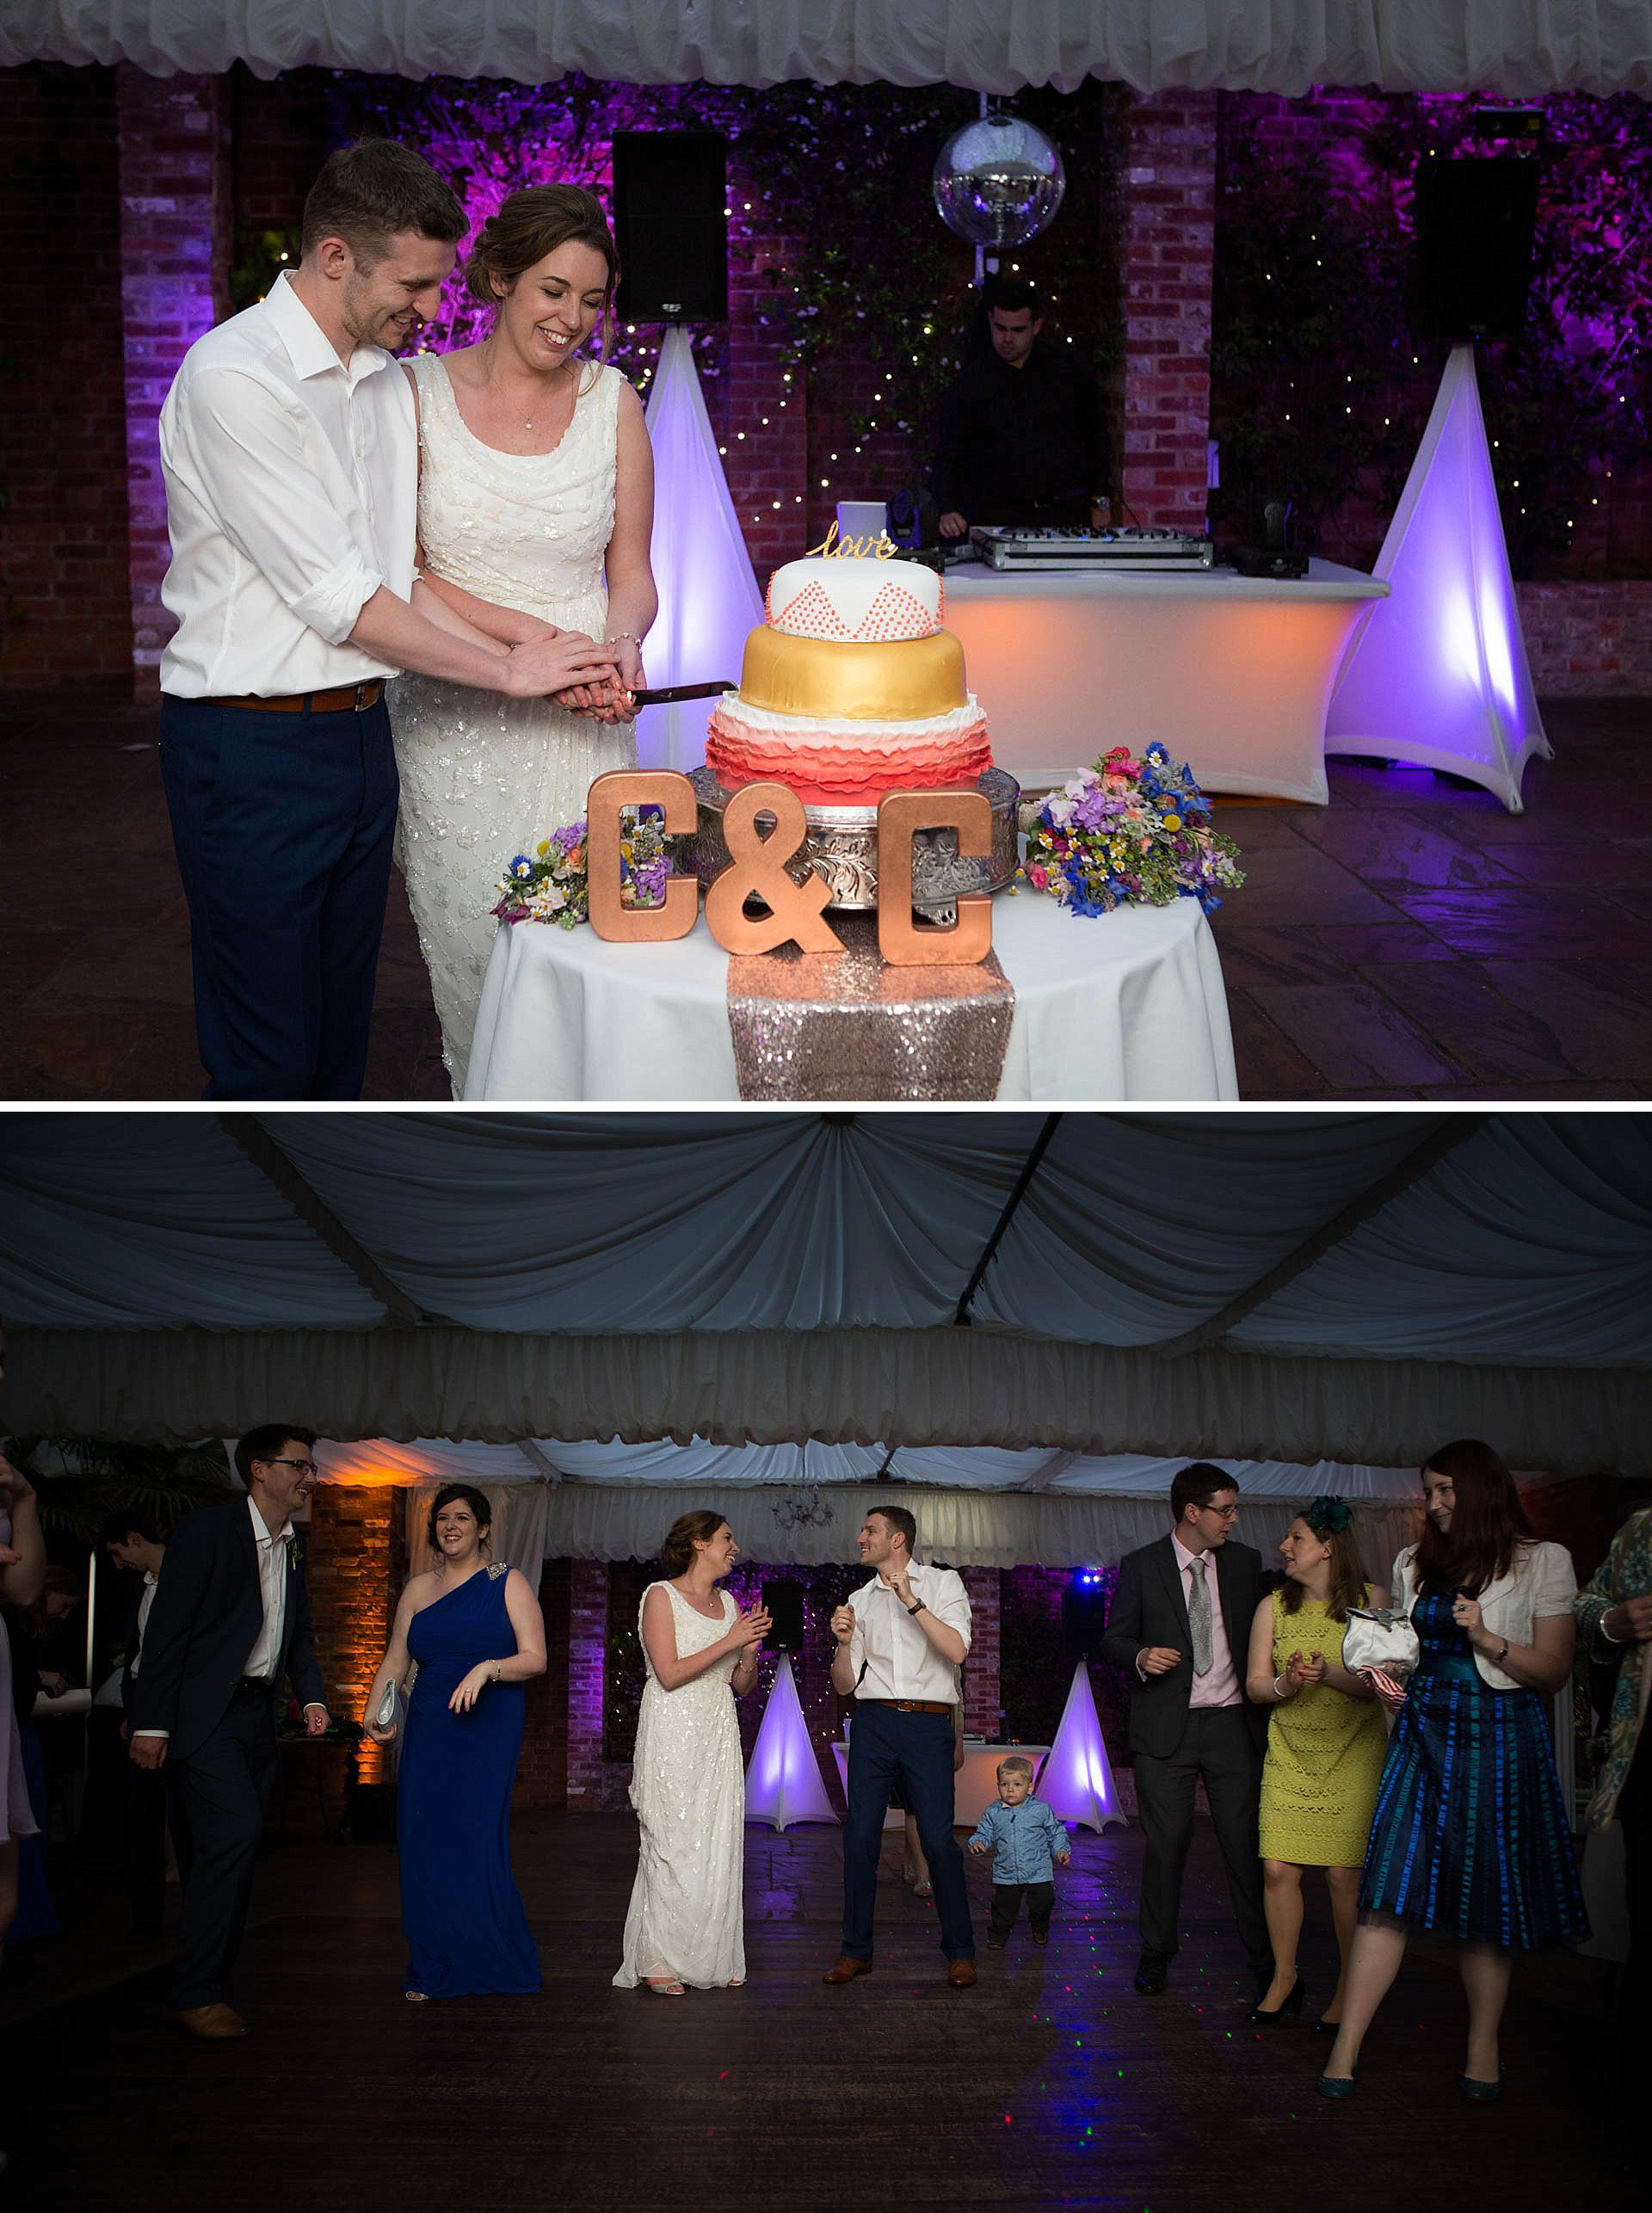 Cake cutting and dancing at Northbrook Park